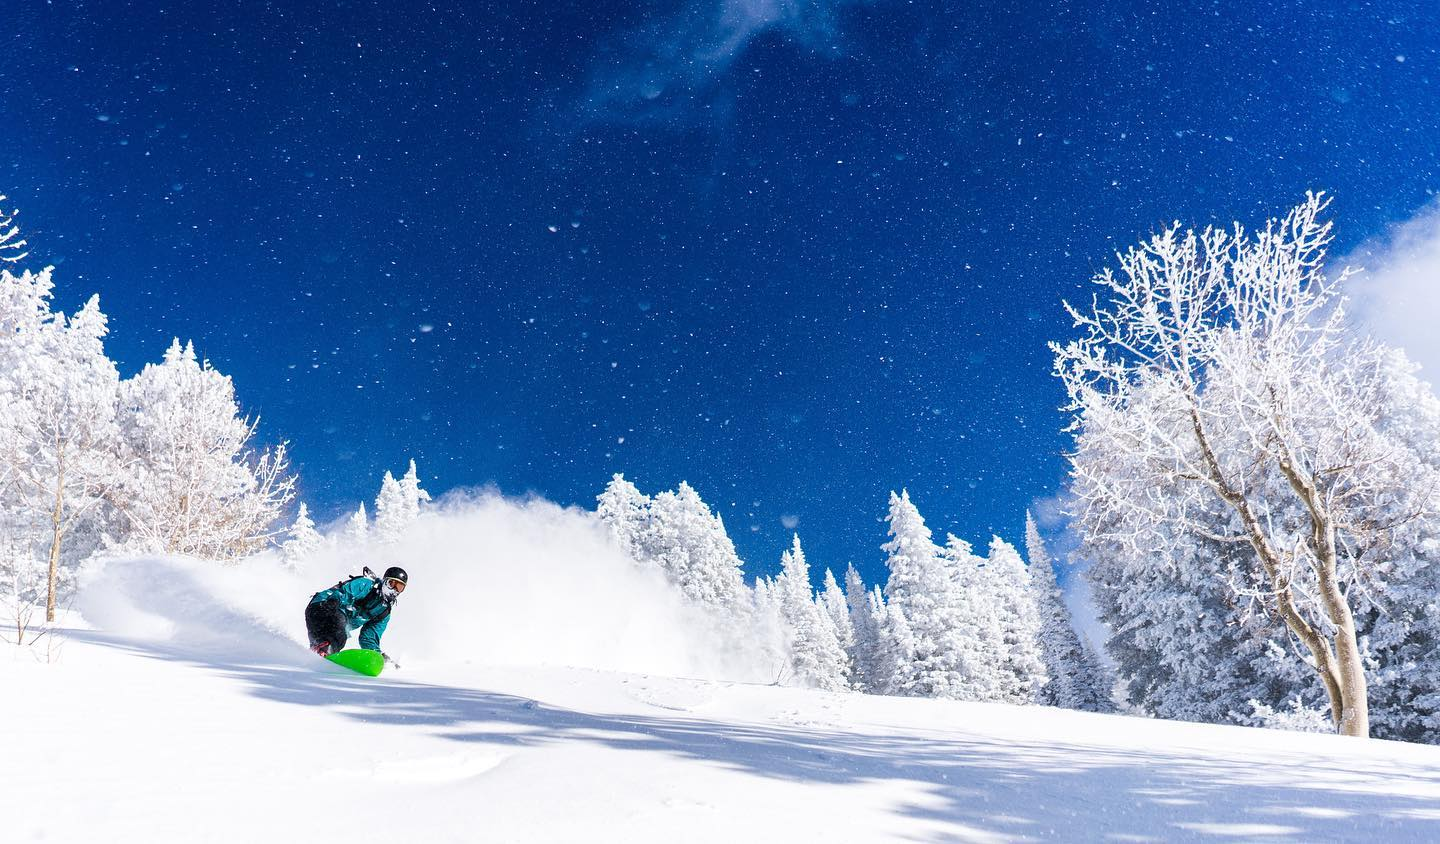 Image of a snowboarder with a neon green board hitting the slopes under a starry sky at Brighton Resort in Utah